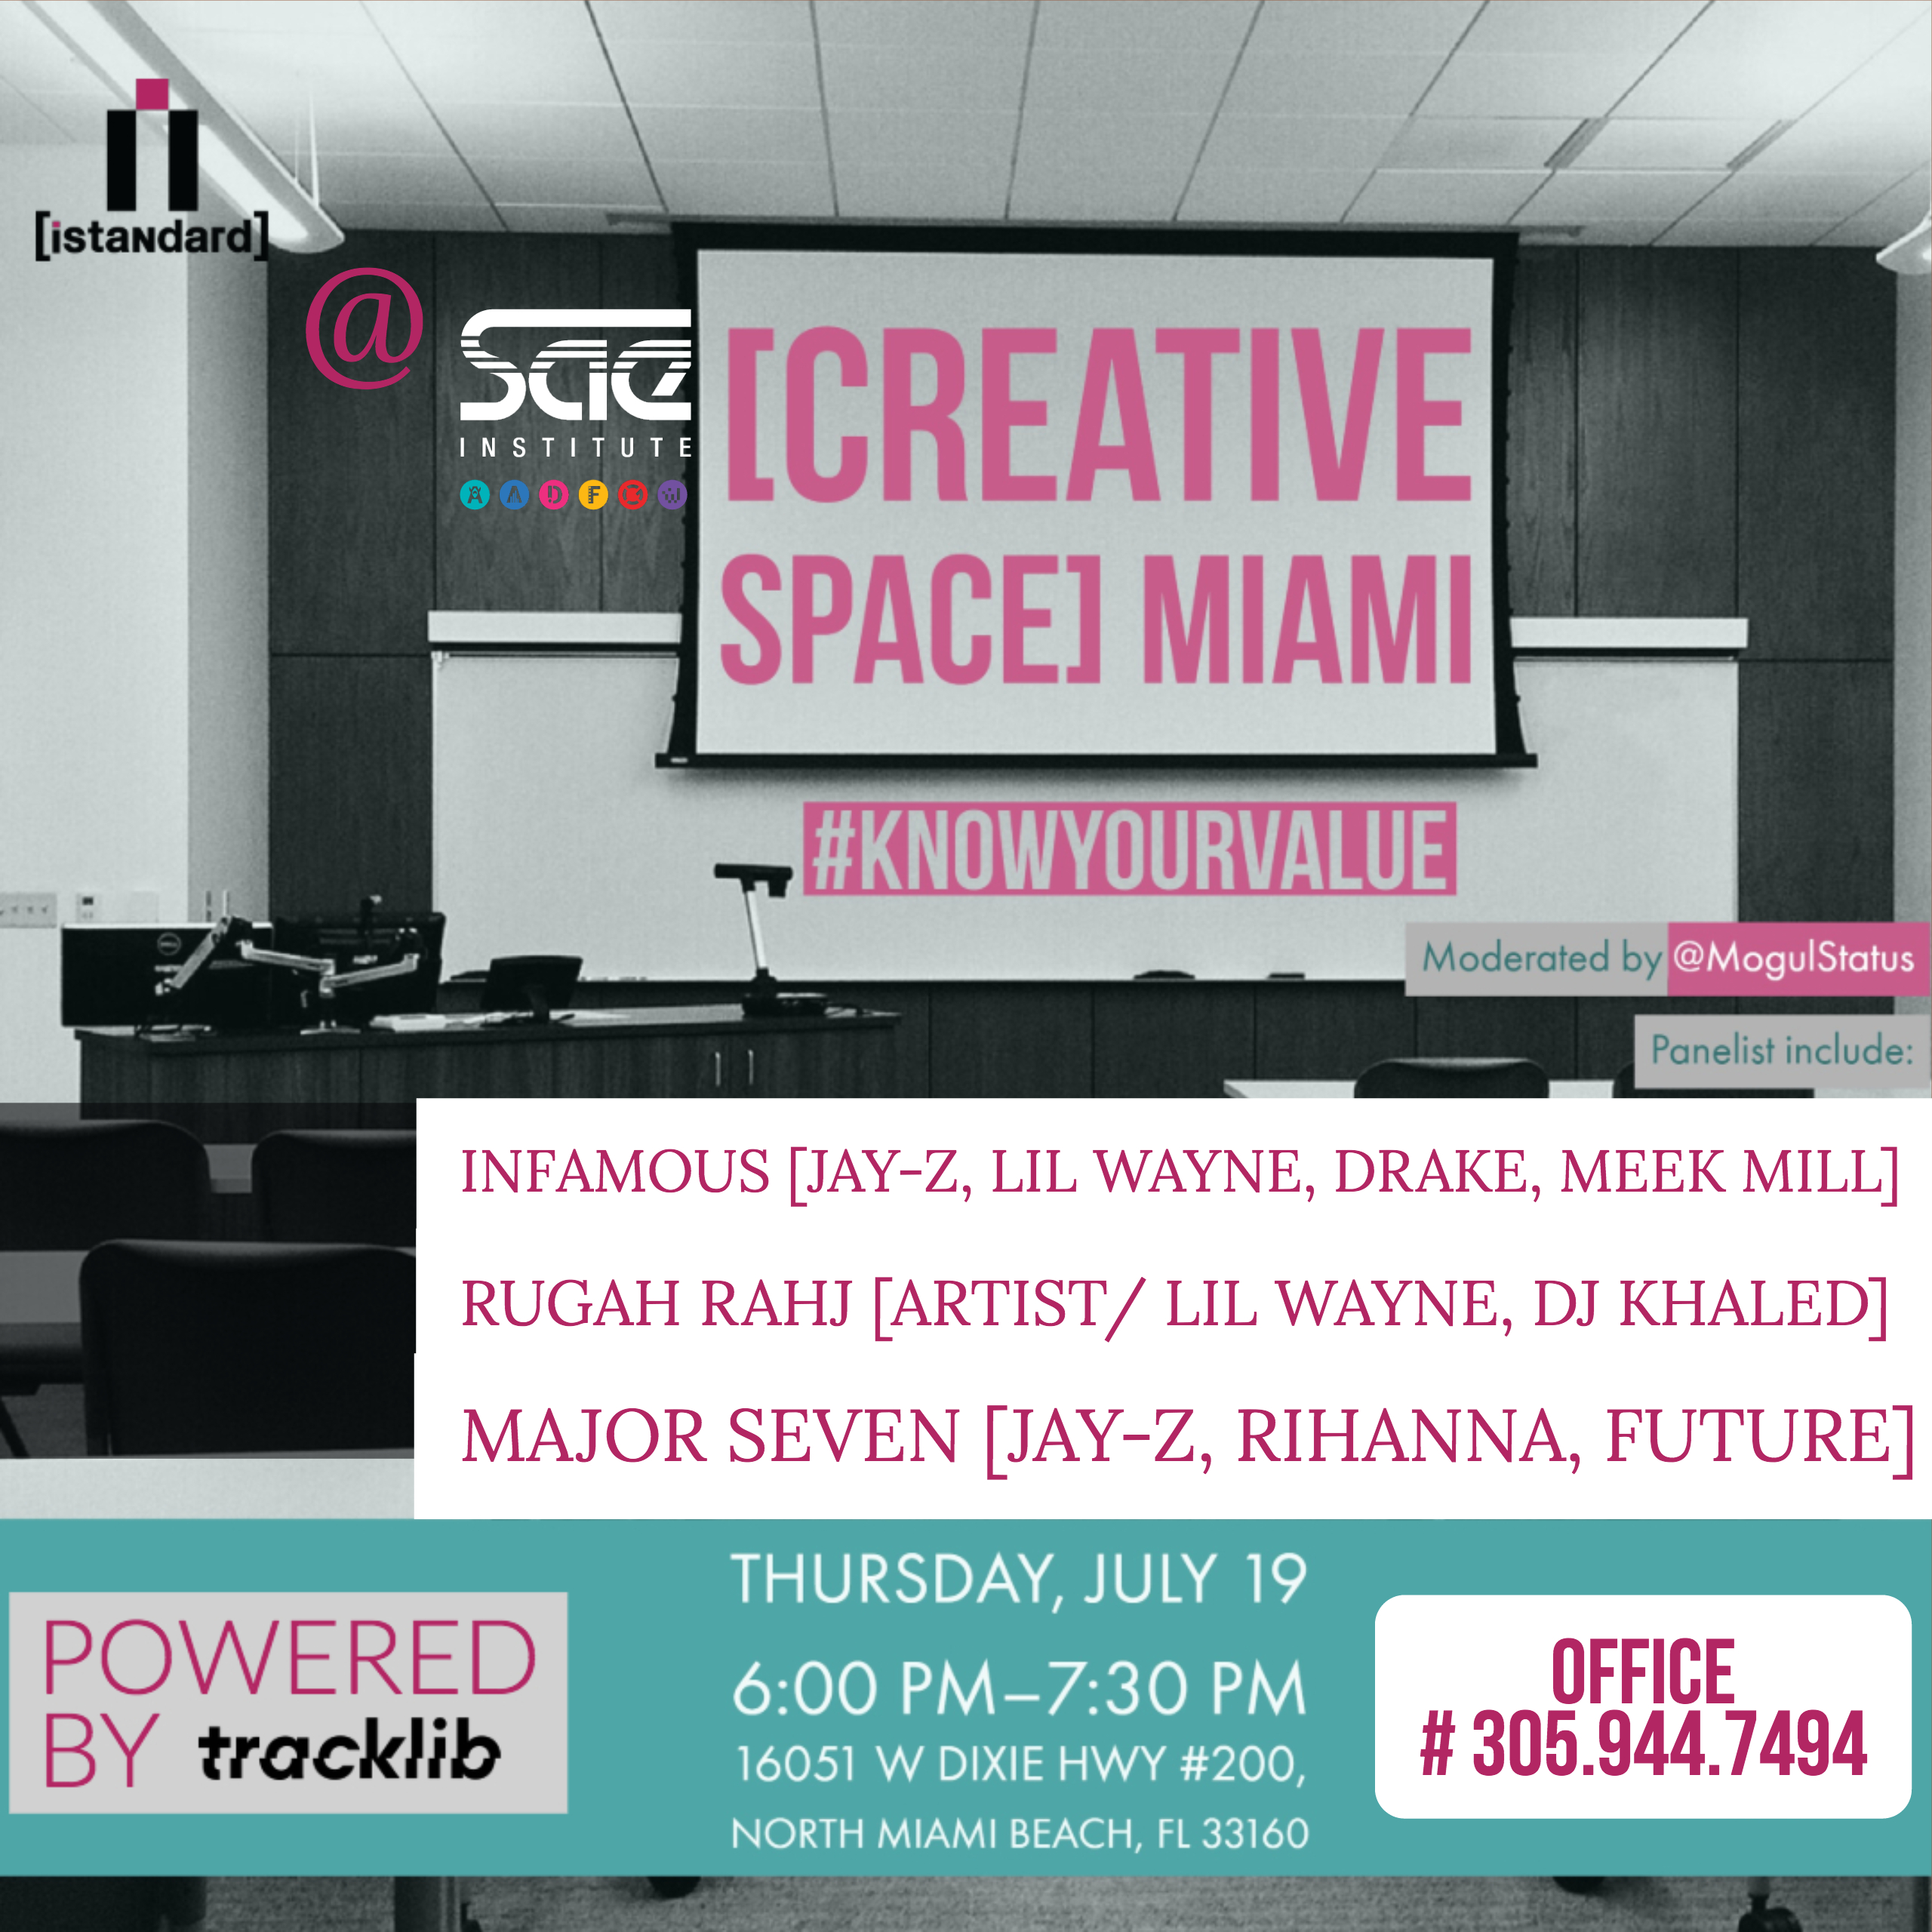 Miami [creative space] - #KnowYourValue